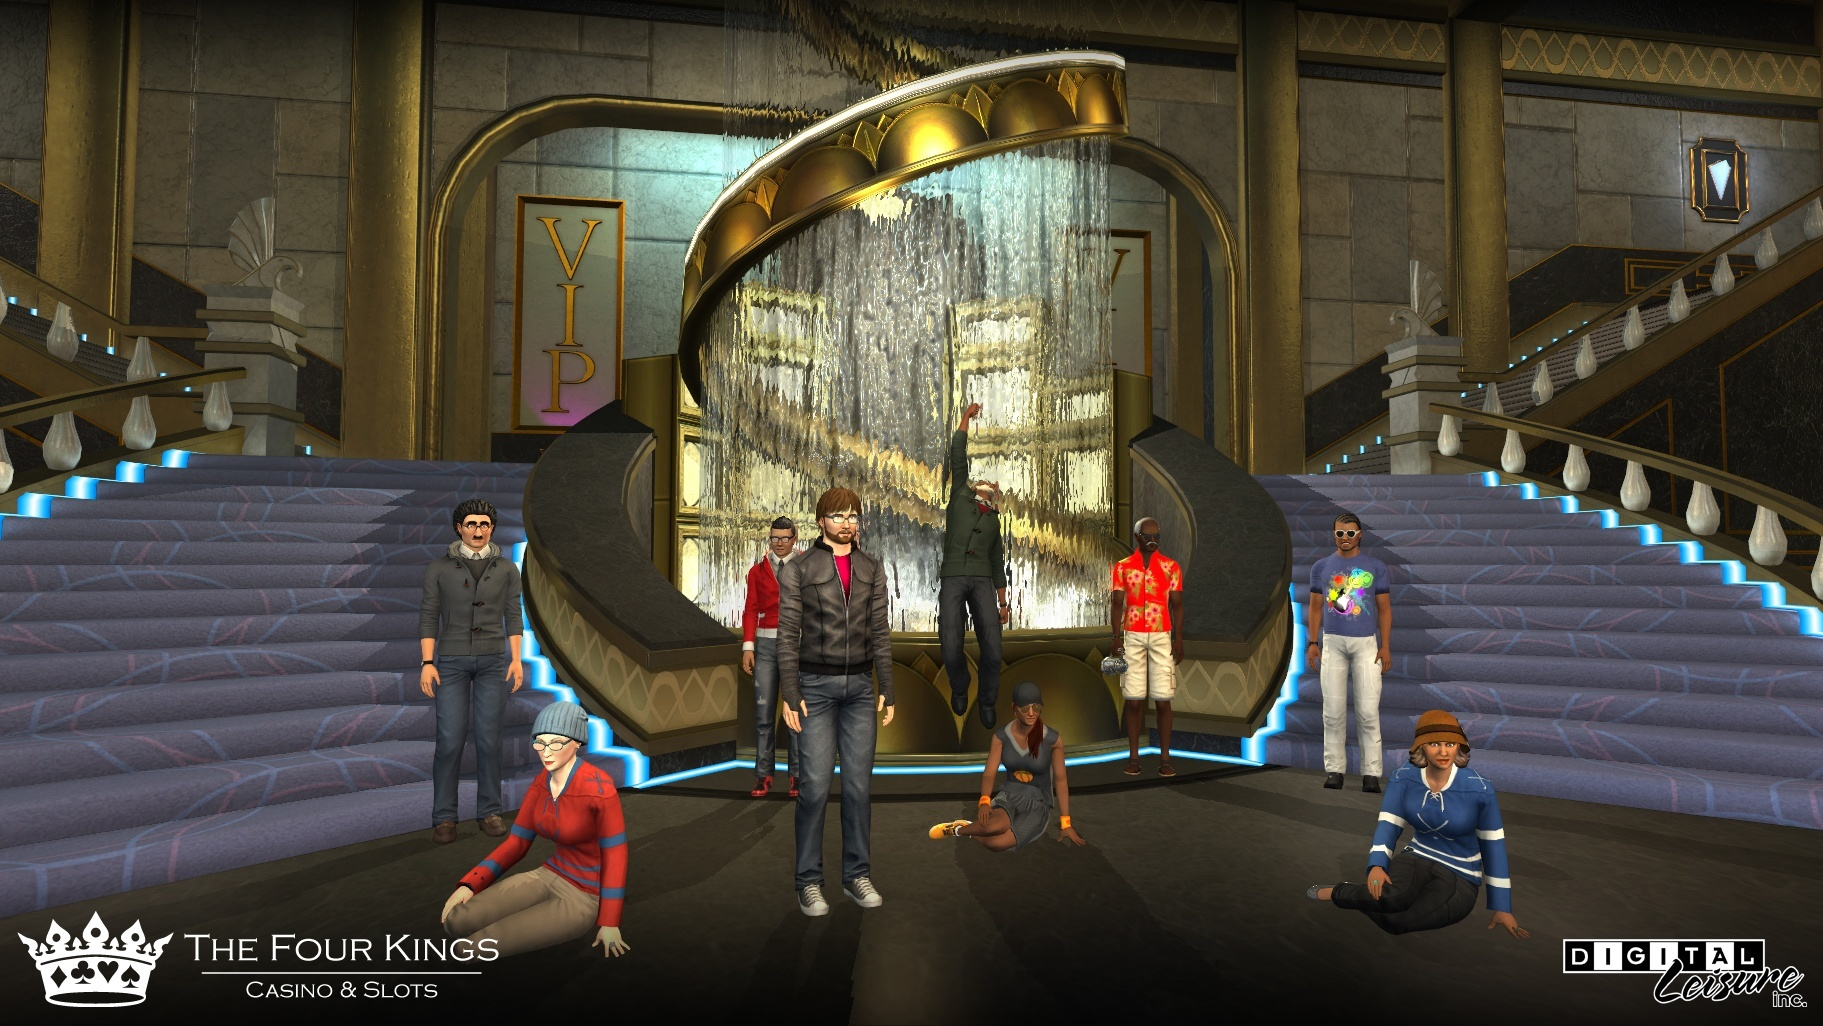 Karen chats with Digital Leisure about their new casino, The Four Kings, kwoman32, Oct 14, 2014, 7:07 PM, YourPSHome.net, jpg, ss6_Fountain.jpg